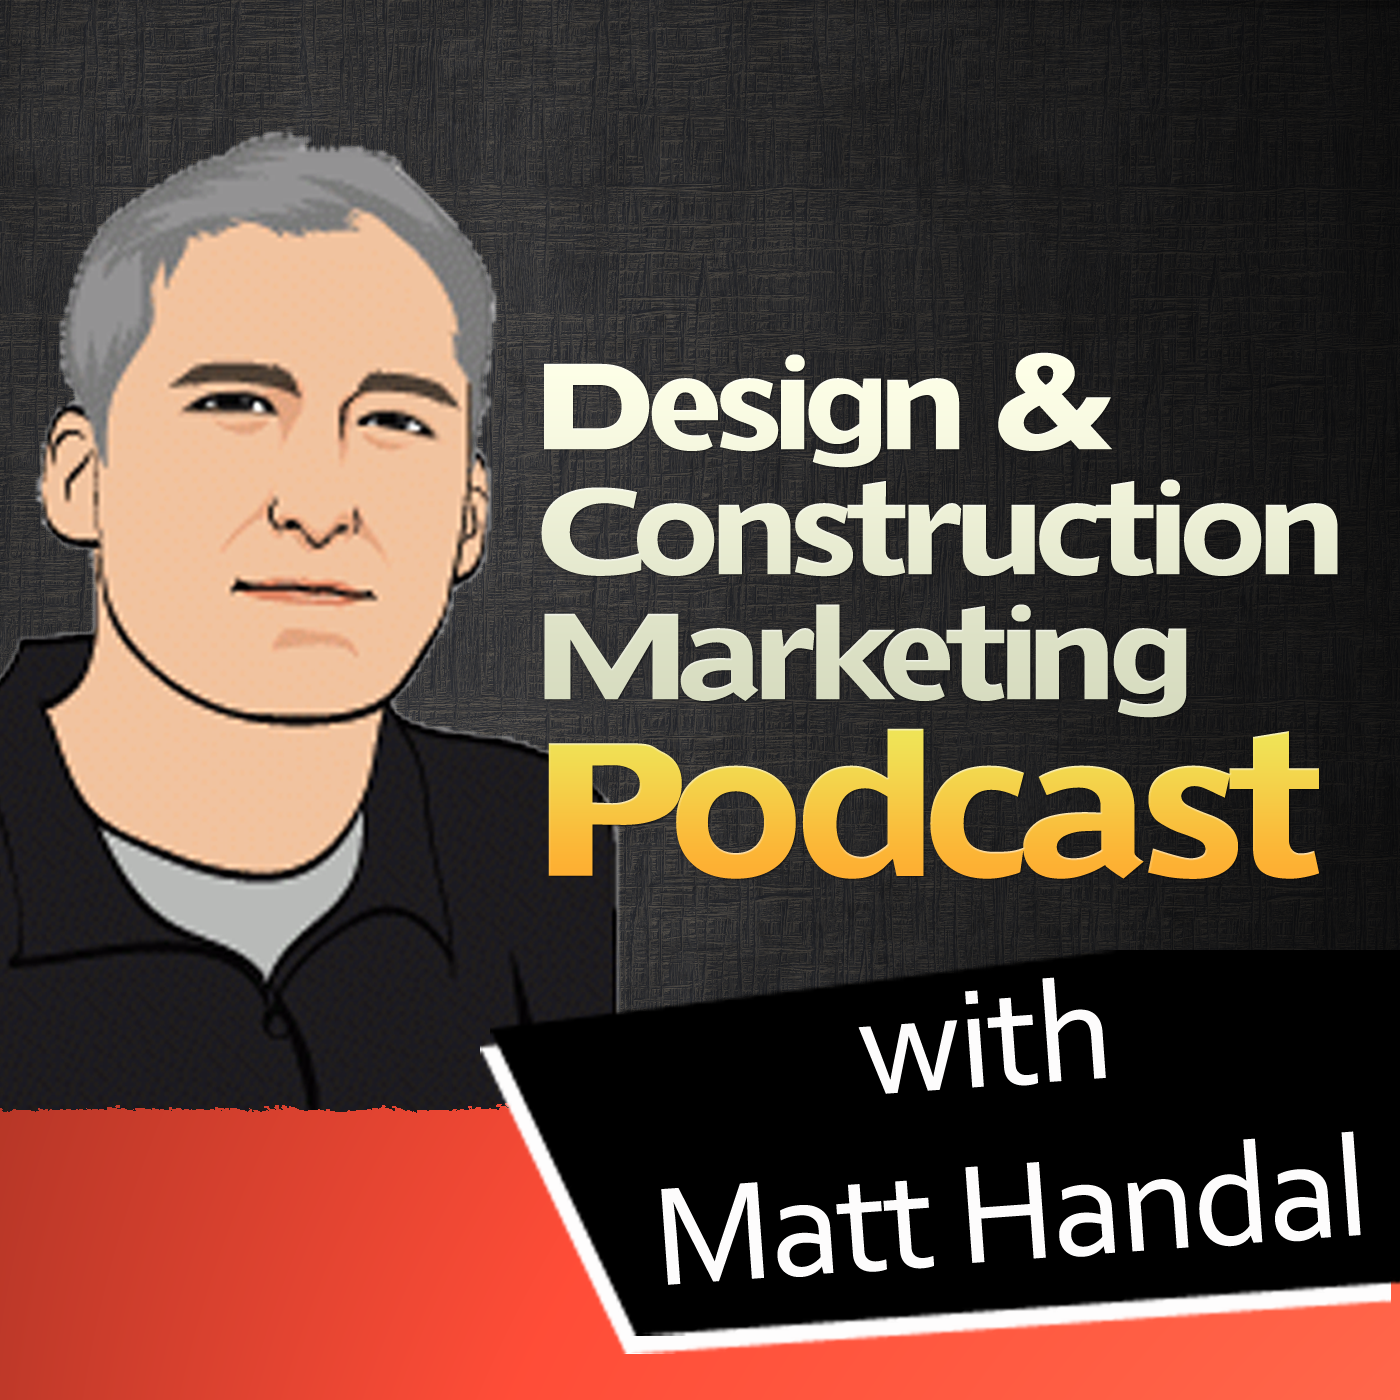 Design and Construction Marketing Podcast